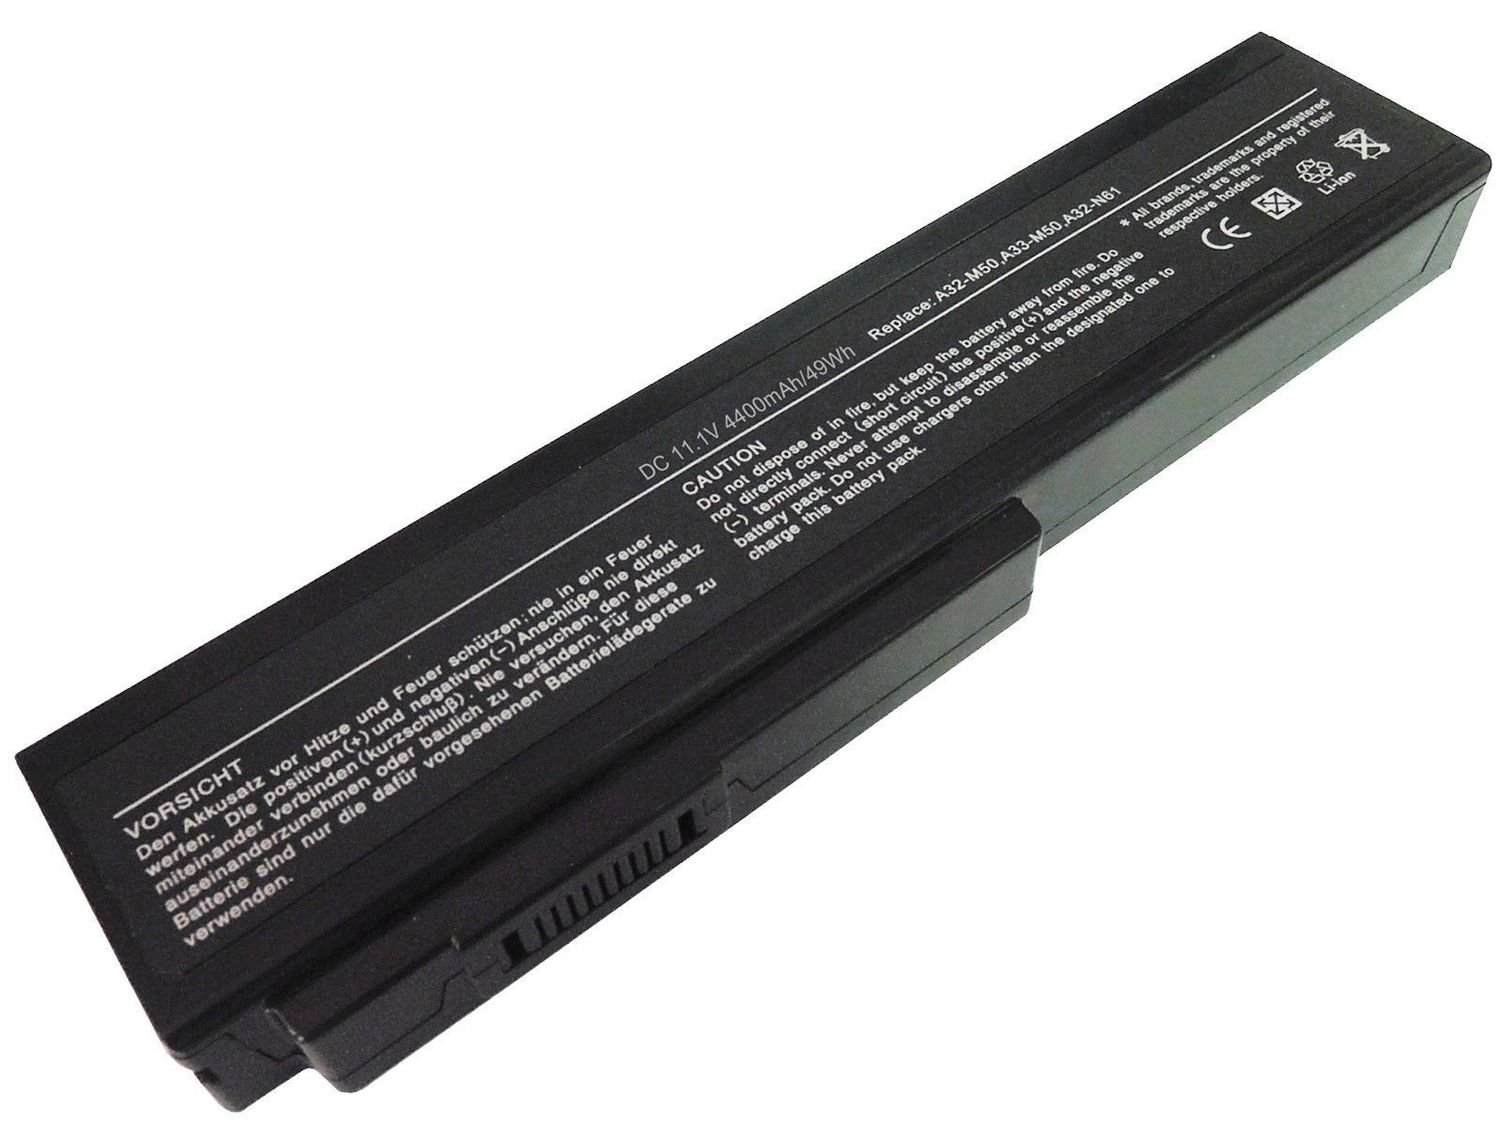 Asus G50 G51 G60 M50 N43 Vx5 X55 X64 N61 N43 L50 compatible laptop battery